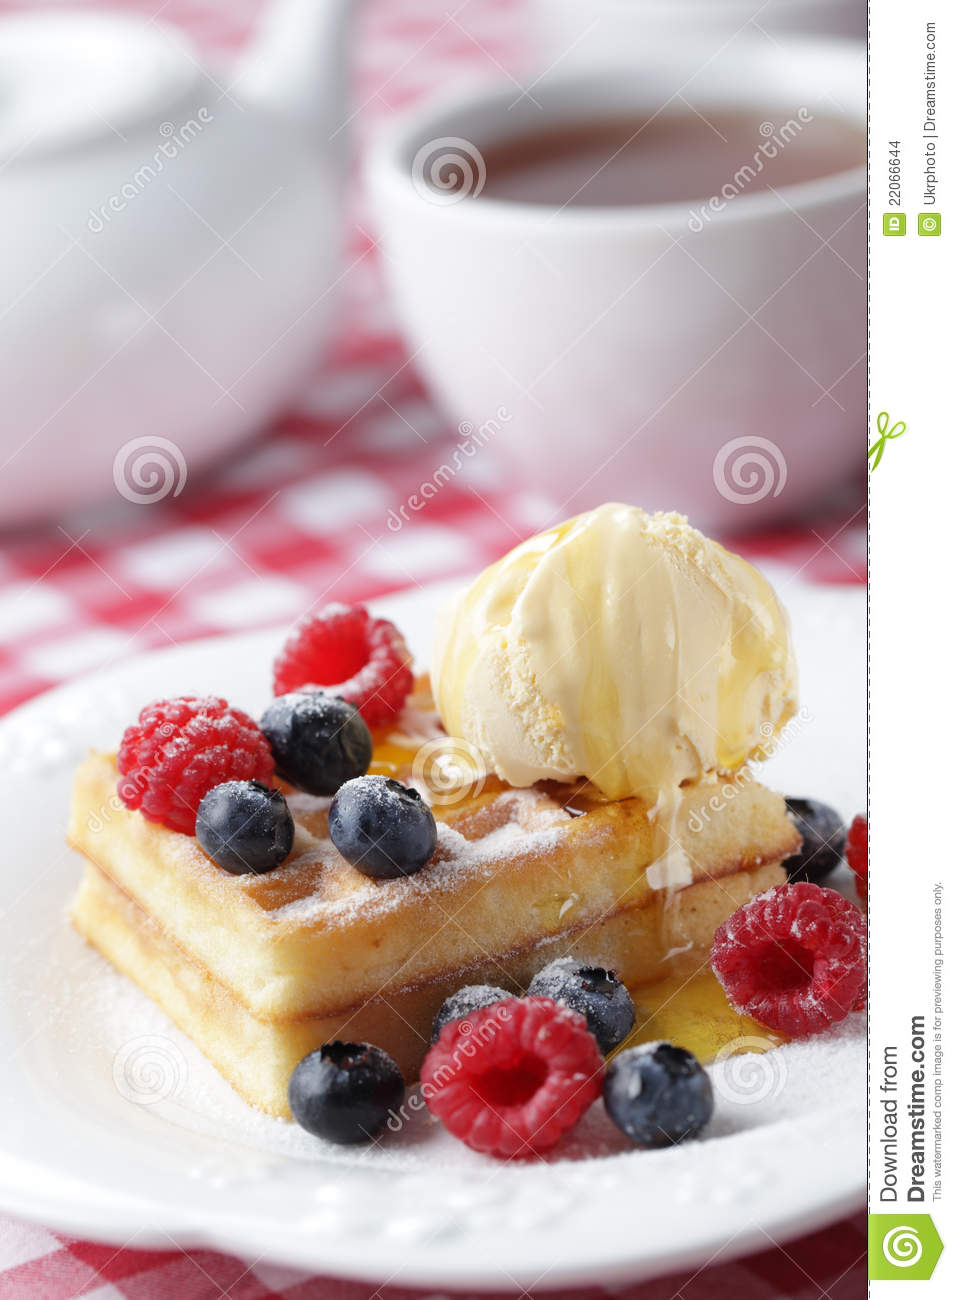 Waffles With Berries And Ice Cream Stock Images - Image: 22066644